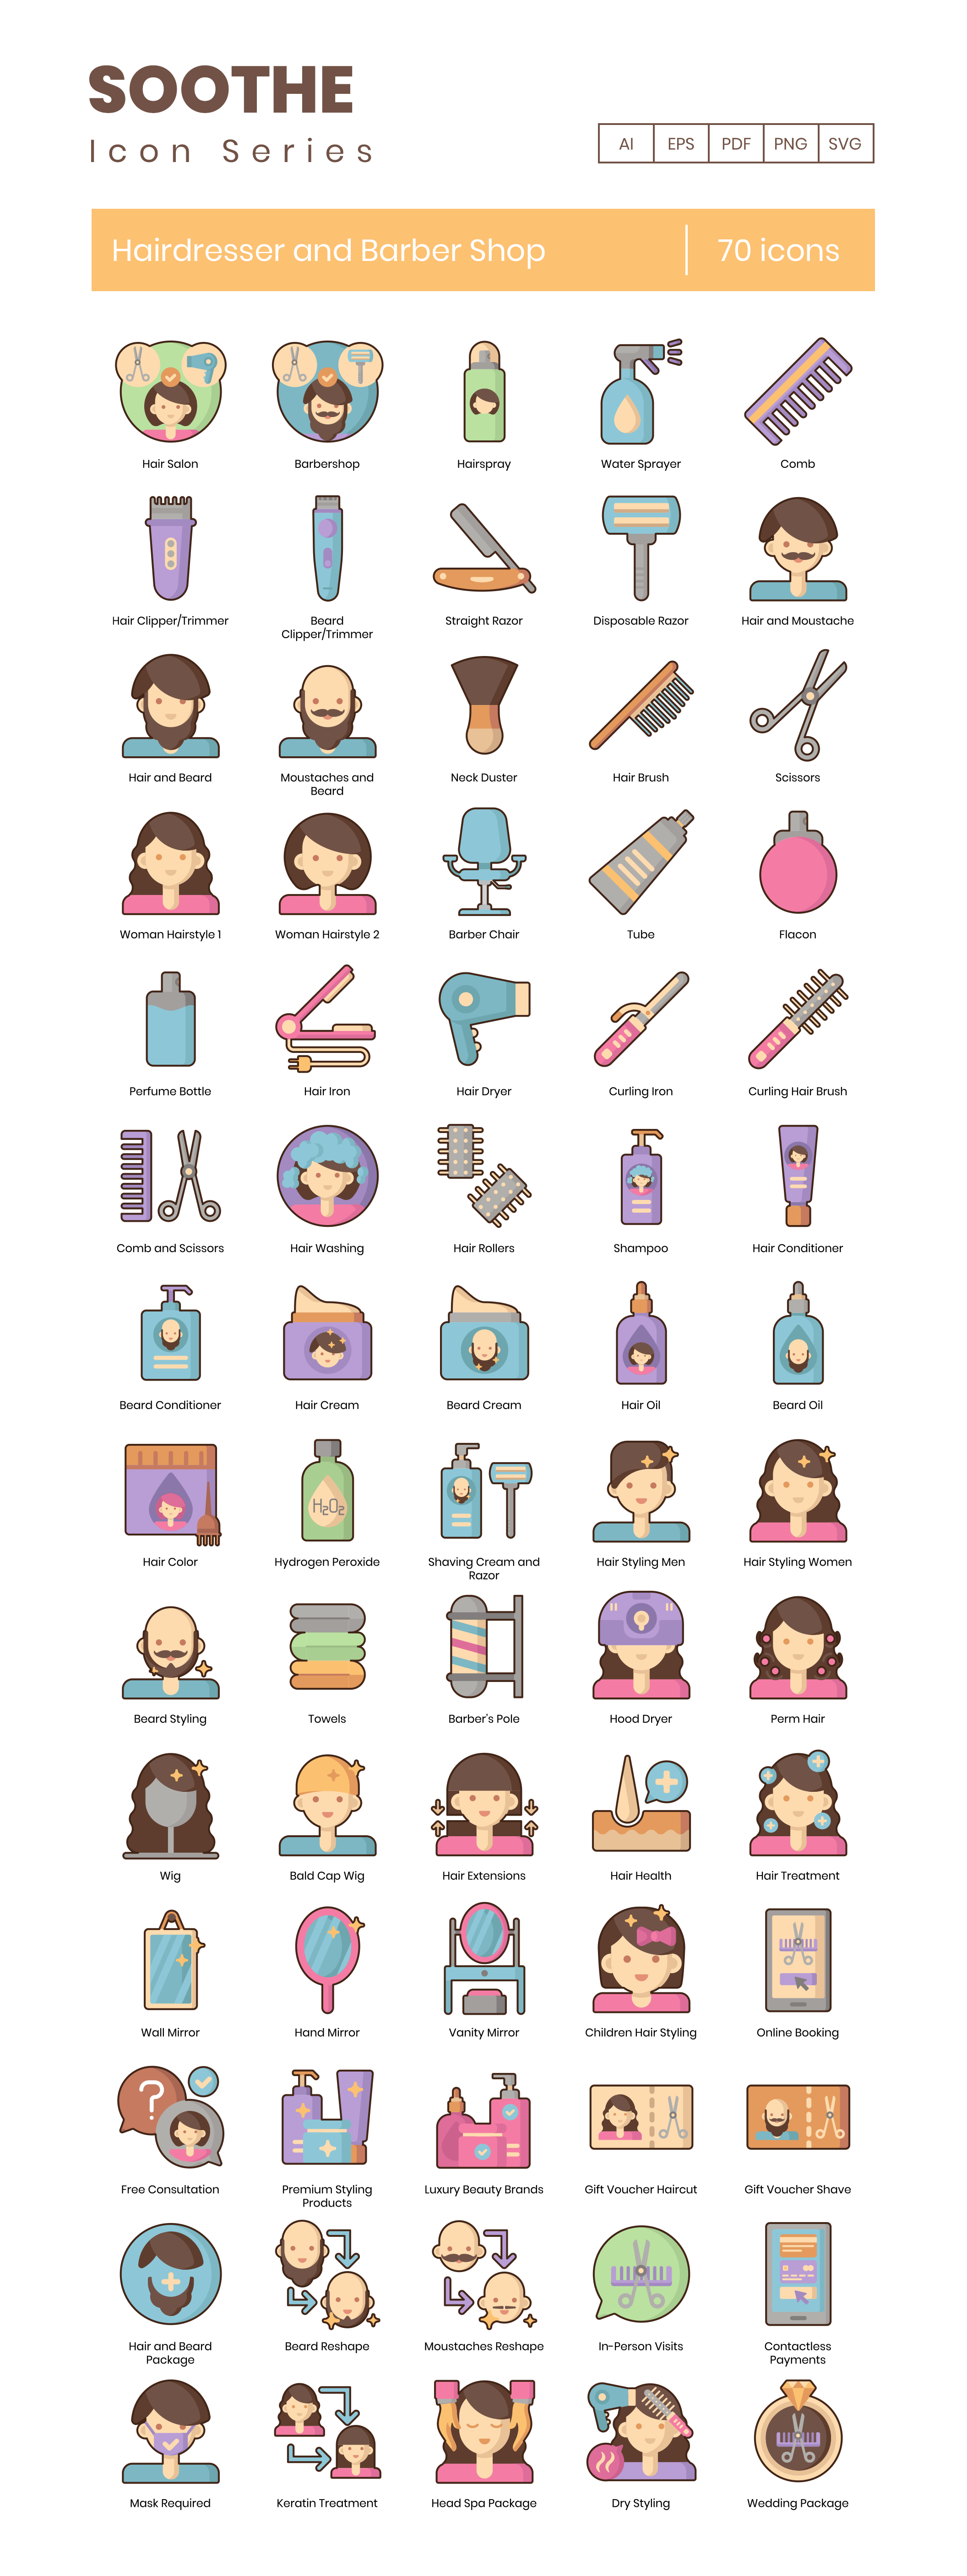 Hairdresser and Barber Shop Vector Icons Preview Image